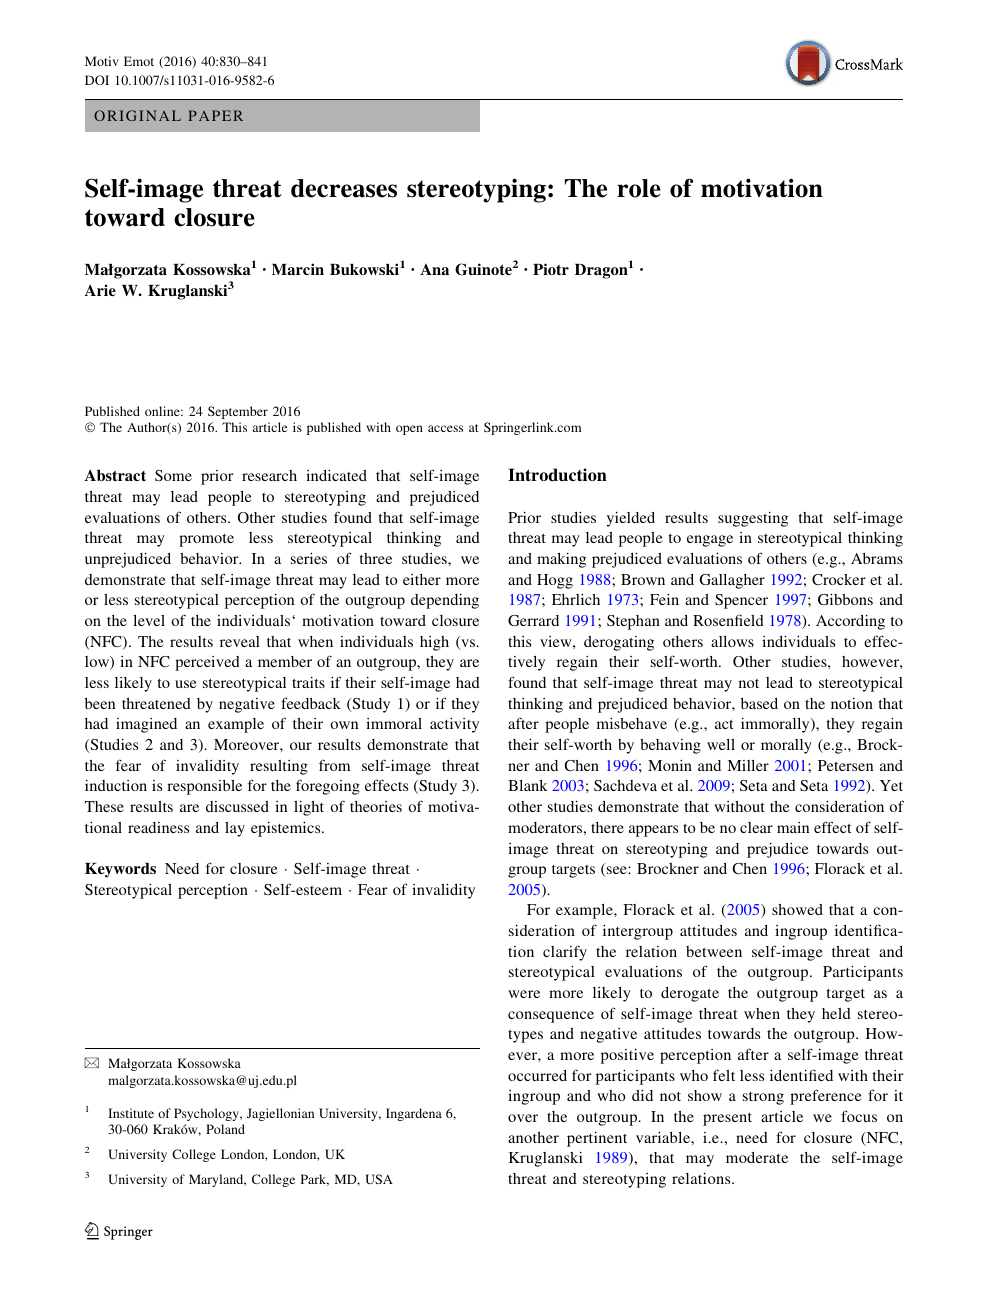 Self-image threat decreases stereotyping: The role of motivation